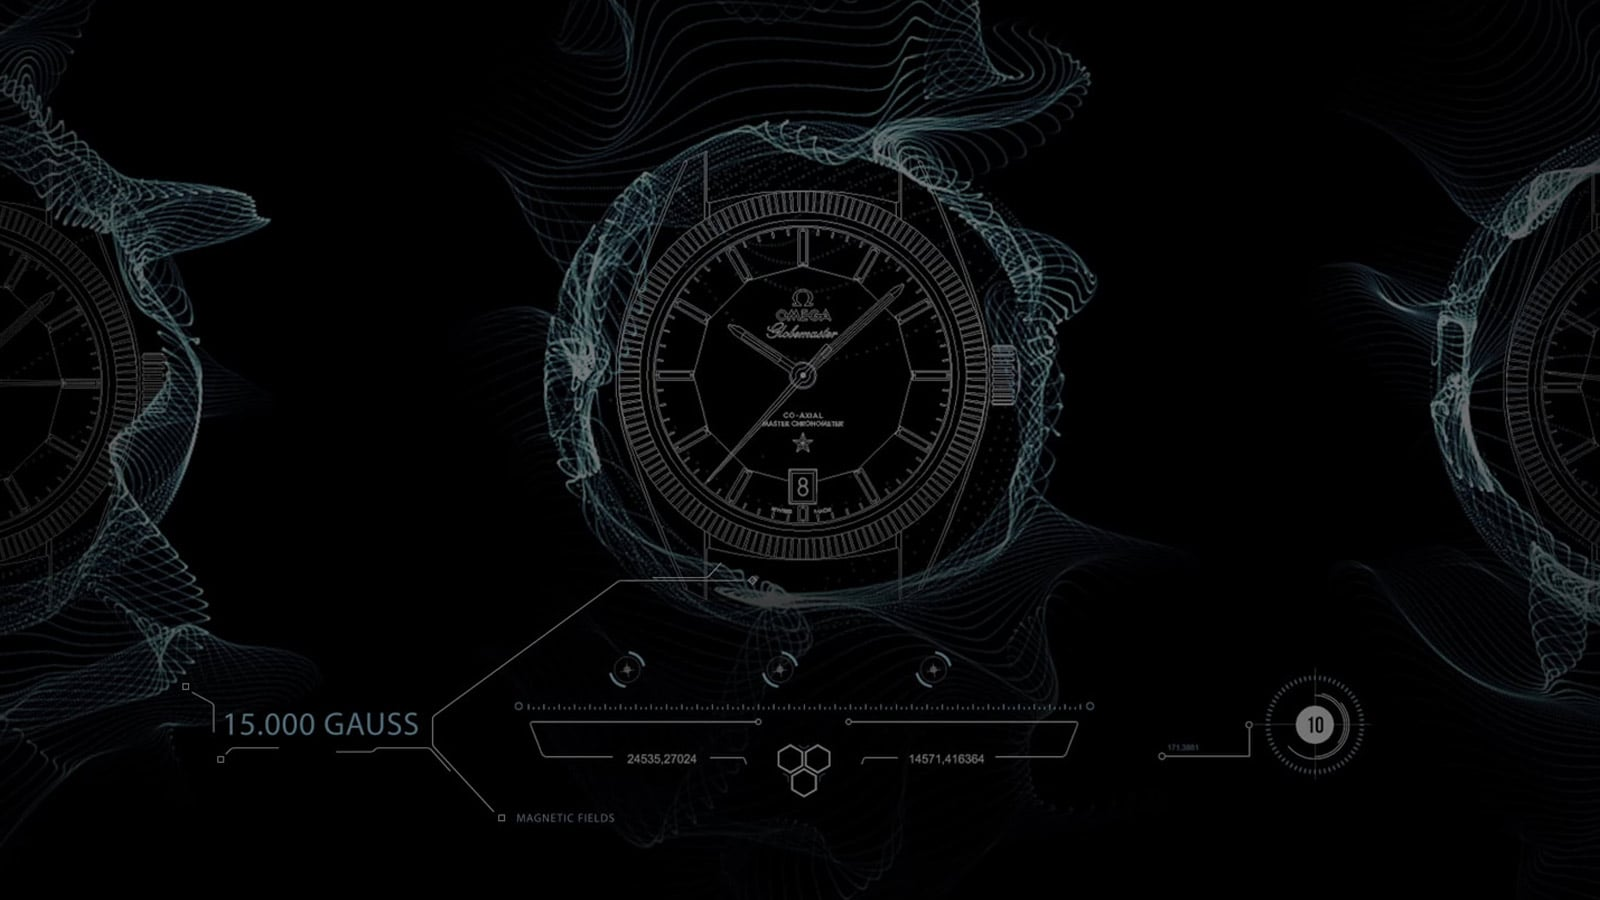 Illustration of a watch being surrounded by a magnetic field